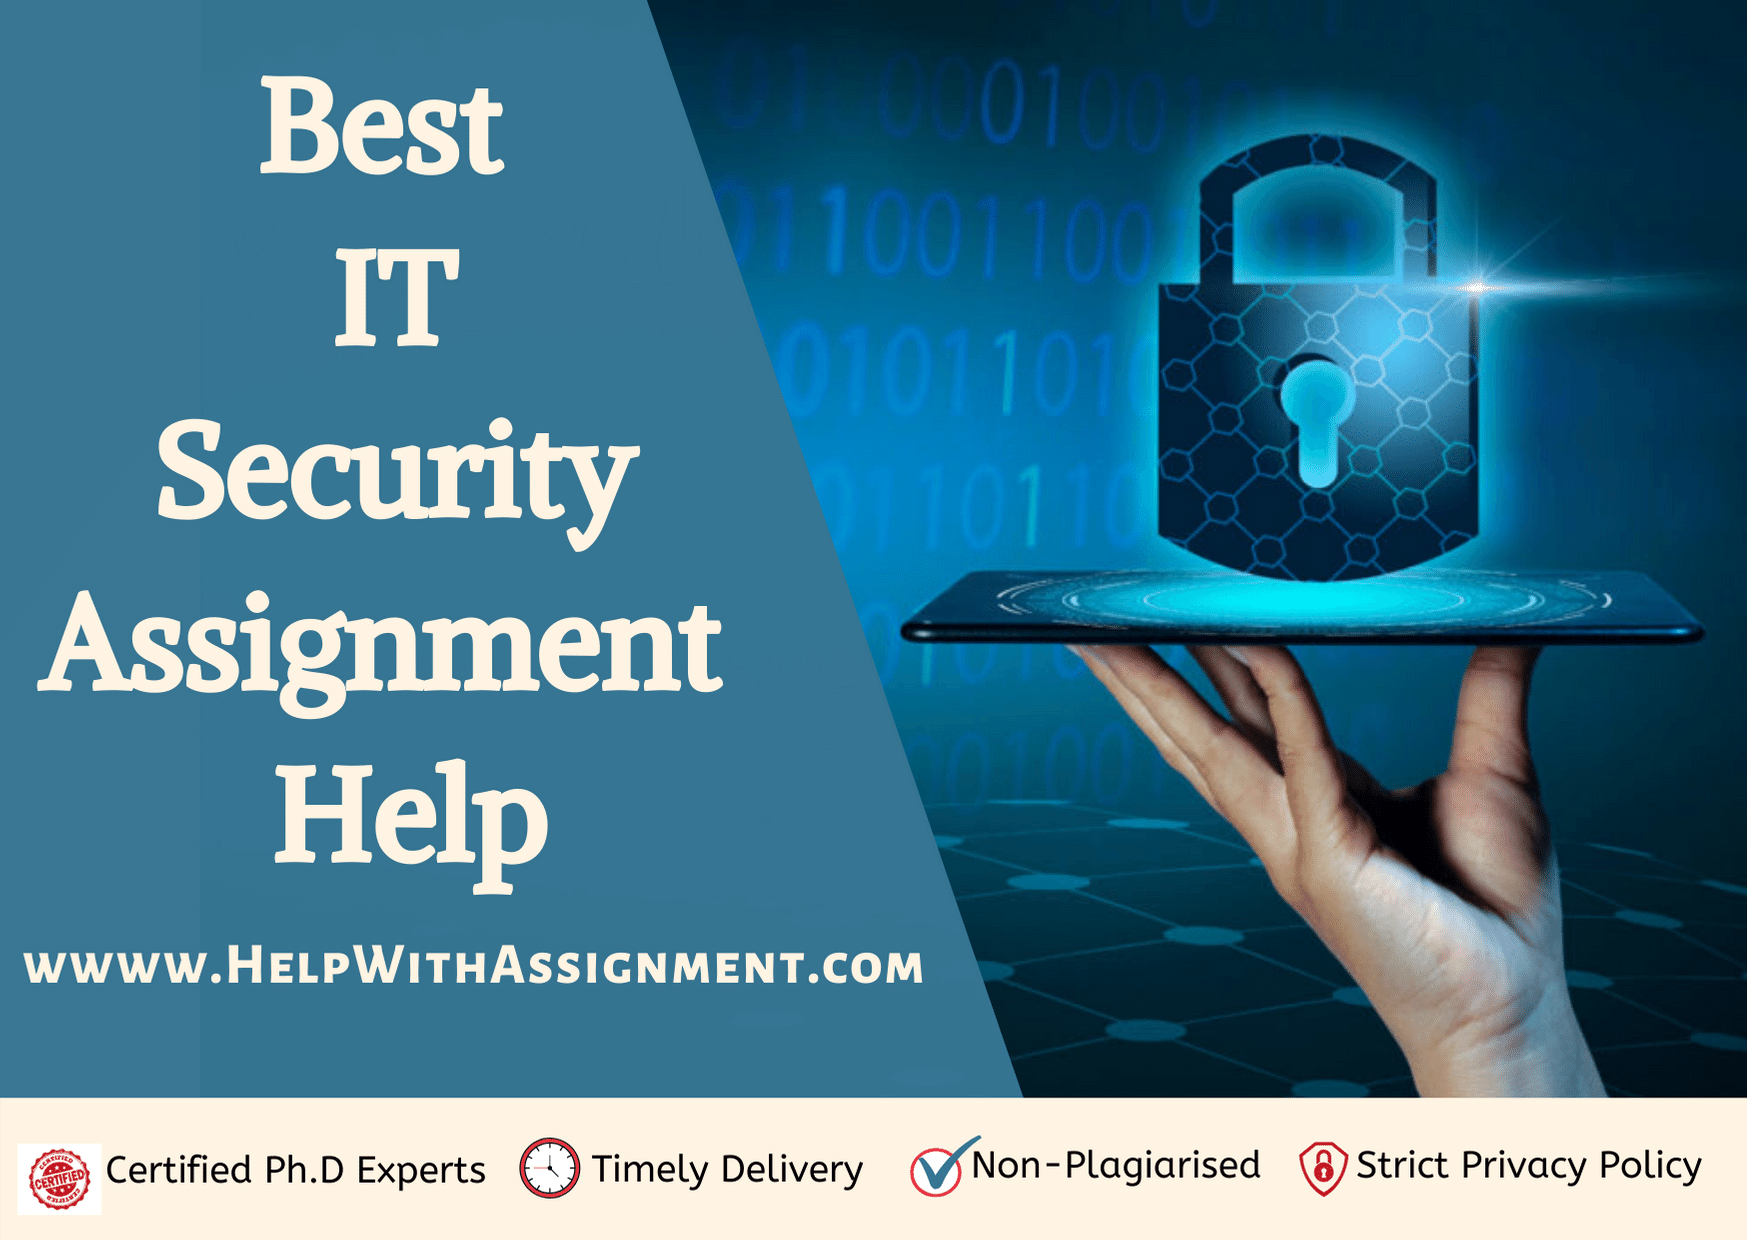 IT Security Assignment Help